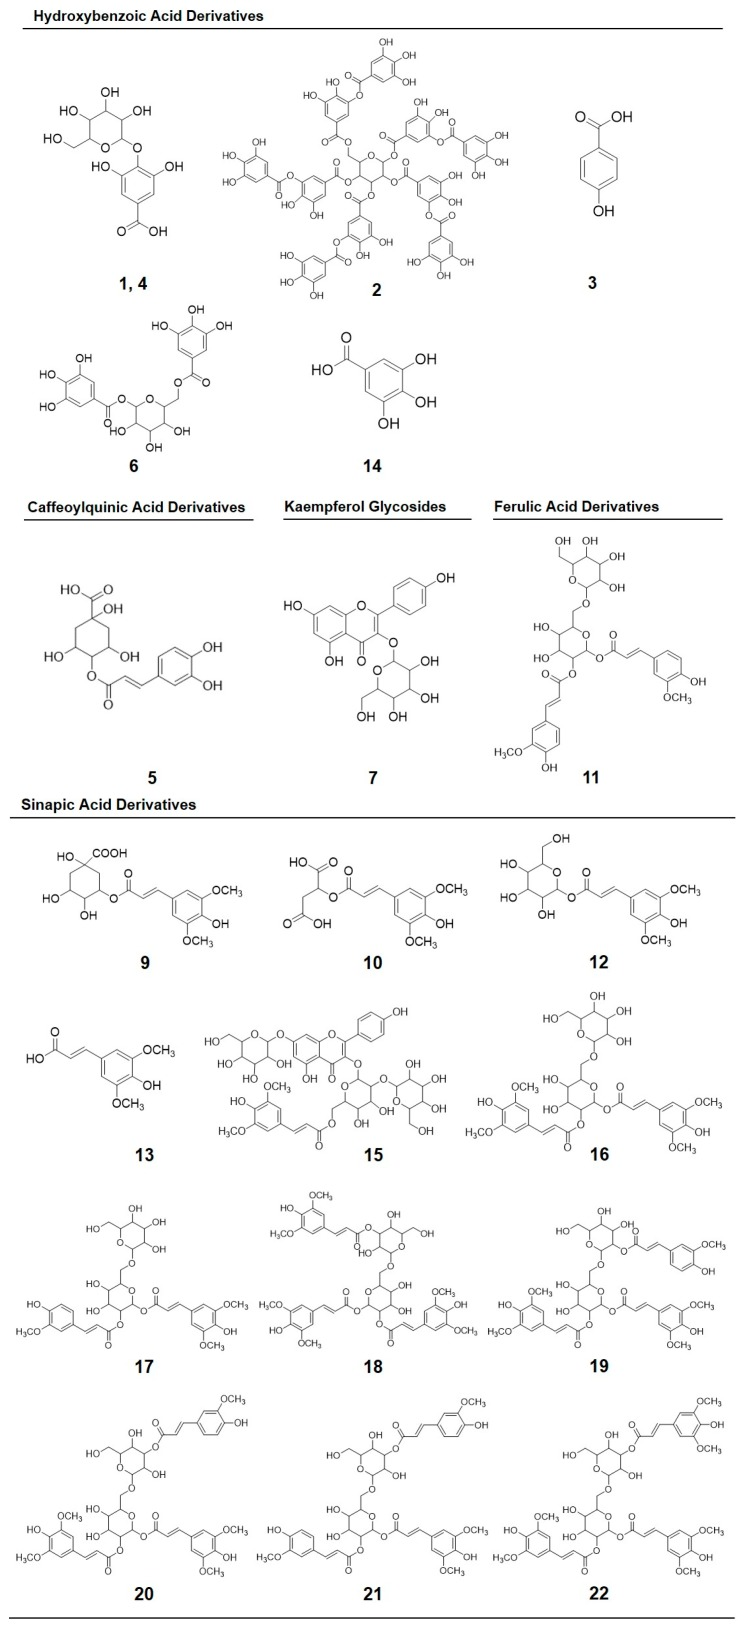 Chemical structures of phenolic compounds identified in broccoli sprouts subjected to UVA or UVB radiation stress: Gallic acid hexoside I ( 1 ); gallotannic acid ( 2 ); p -hydroxybenzoic acid ( 3 ); gallic acid hexoside II ( 4 ); 4- O <t>-caffeoylquinic</t> acid ( 5 ); digalloyl hexoside ( 6 ); 3- O -hexoside kaempferol ( 7 ); 1- O -sinapoyl-β- d -glucose ( 9 ); sinapoyl malate ( 10 ); 1,2-diferulolylgentiobiose ( 11 ); 5-sinapoylquinic acid ( 12 ); sinapic acid ( 13 ); gallic acid ( 14 ); kaempferol 3- O -sinapoyl-sophoroside 7- O -glucoside ( 15 ); 1,2-disinapoylgentiobiose ( 16 ); 1-sinapoyl-2'-ferulolylgentiobiose ( 17 ); 1,2,2'- trisinapoylgentiobiose ( 18 ); 1,2-disinapoyl-1'-ferulolylgentiobiose ( 19 ); 1,2-disinapoyl-2-ferulolylgentiobiose ( 20 ); 1-sinapoyl-2,2'-diferulolylgentiobiose ( 21 ); (isomeric) 1,2,2'-trisinapoylgentiobiose ( 22 ).The numbering corresponds to the peak number assigned in Table 3 .